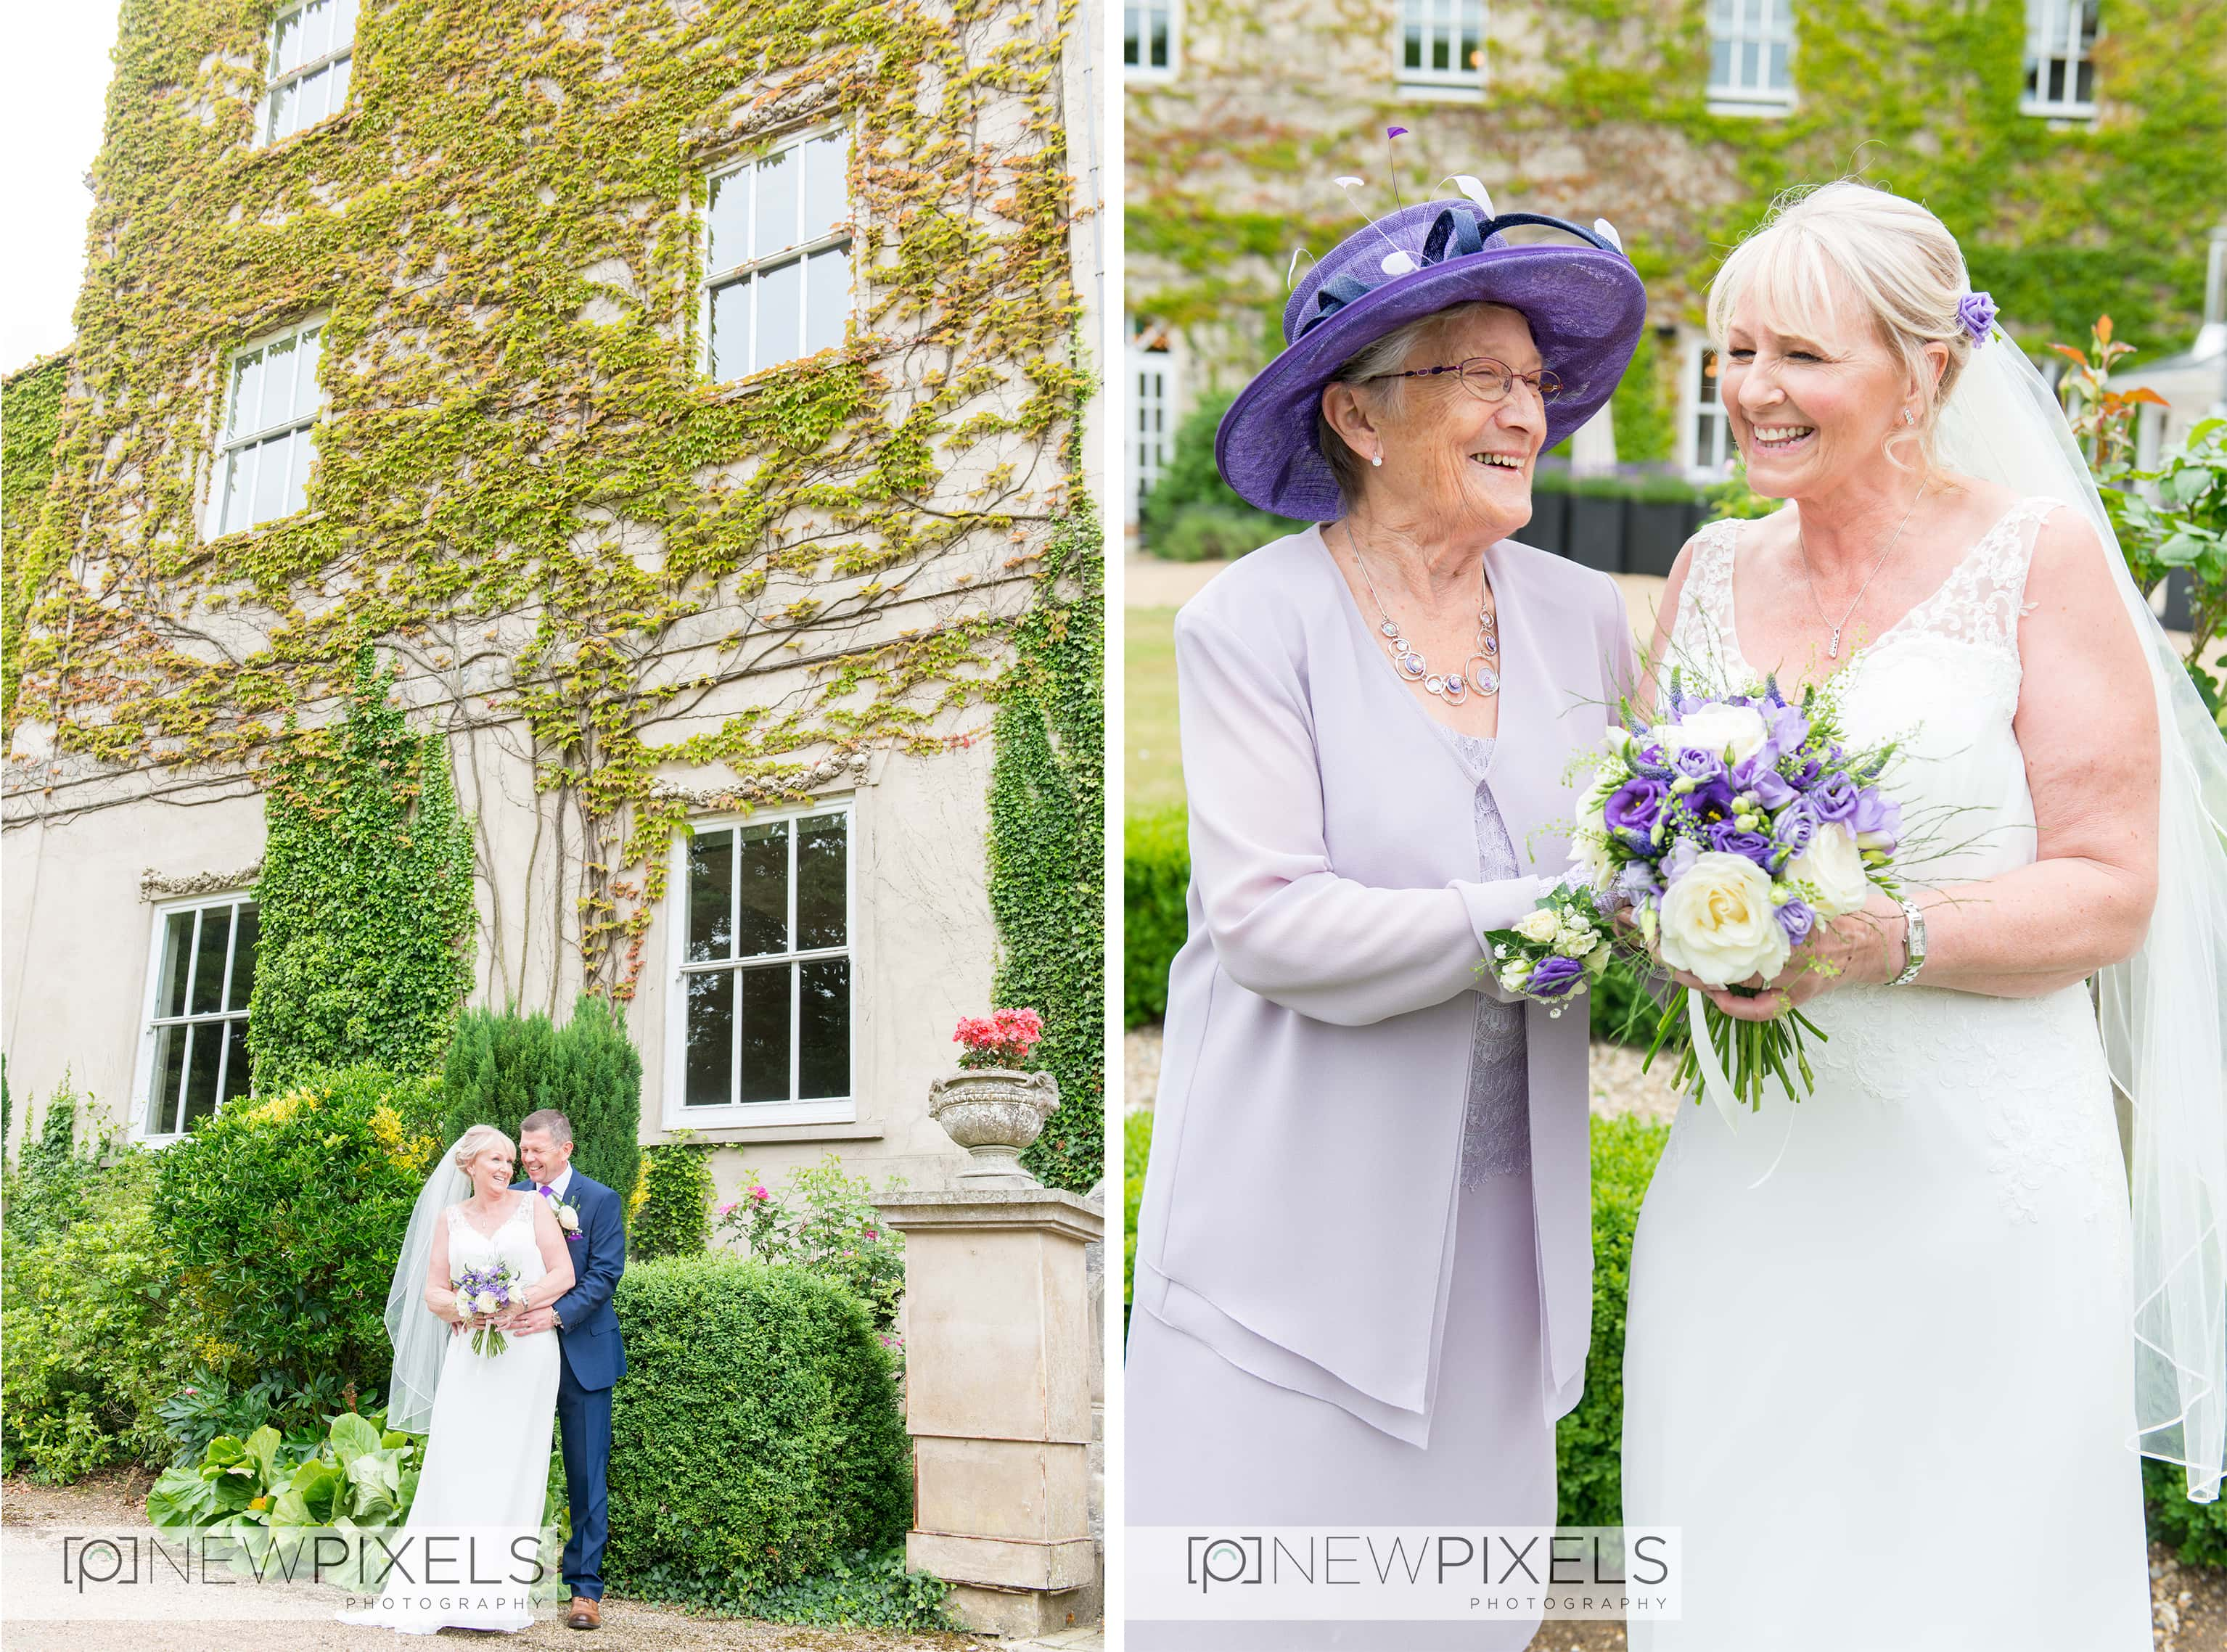 downhall wedding photographer13